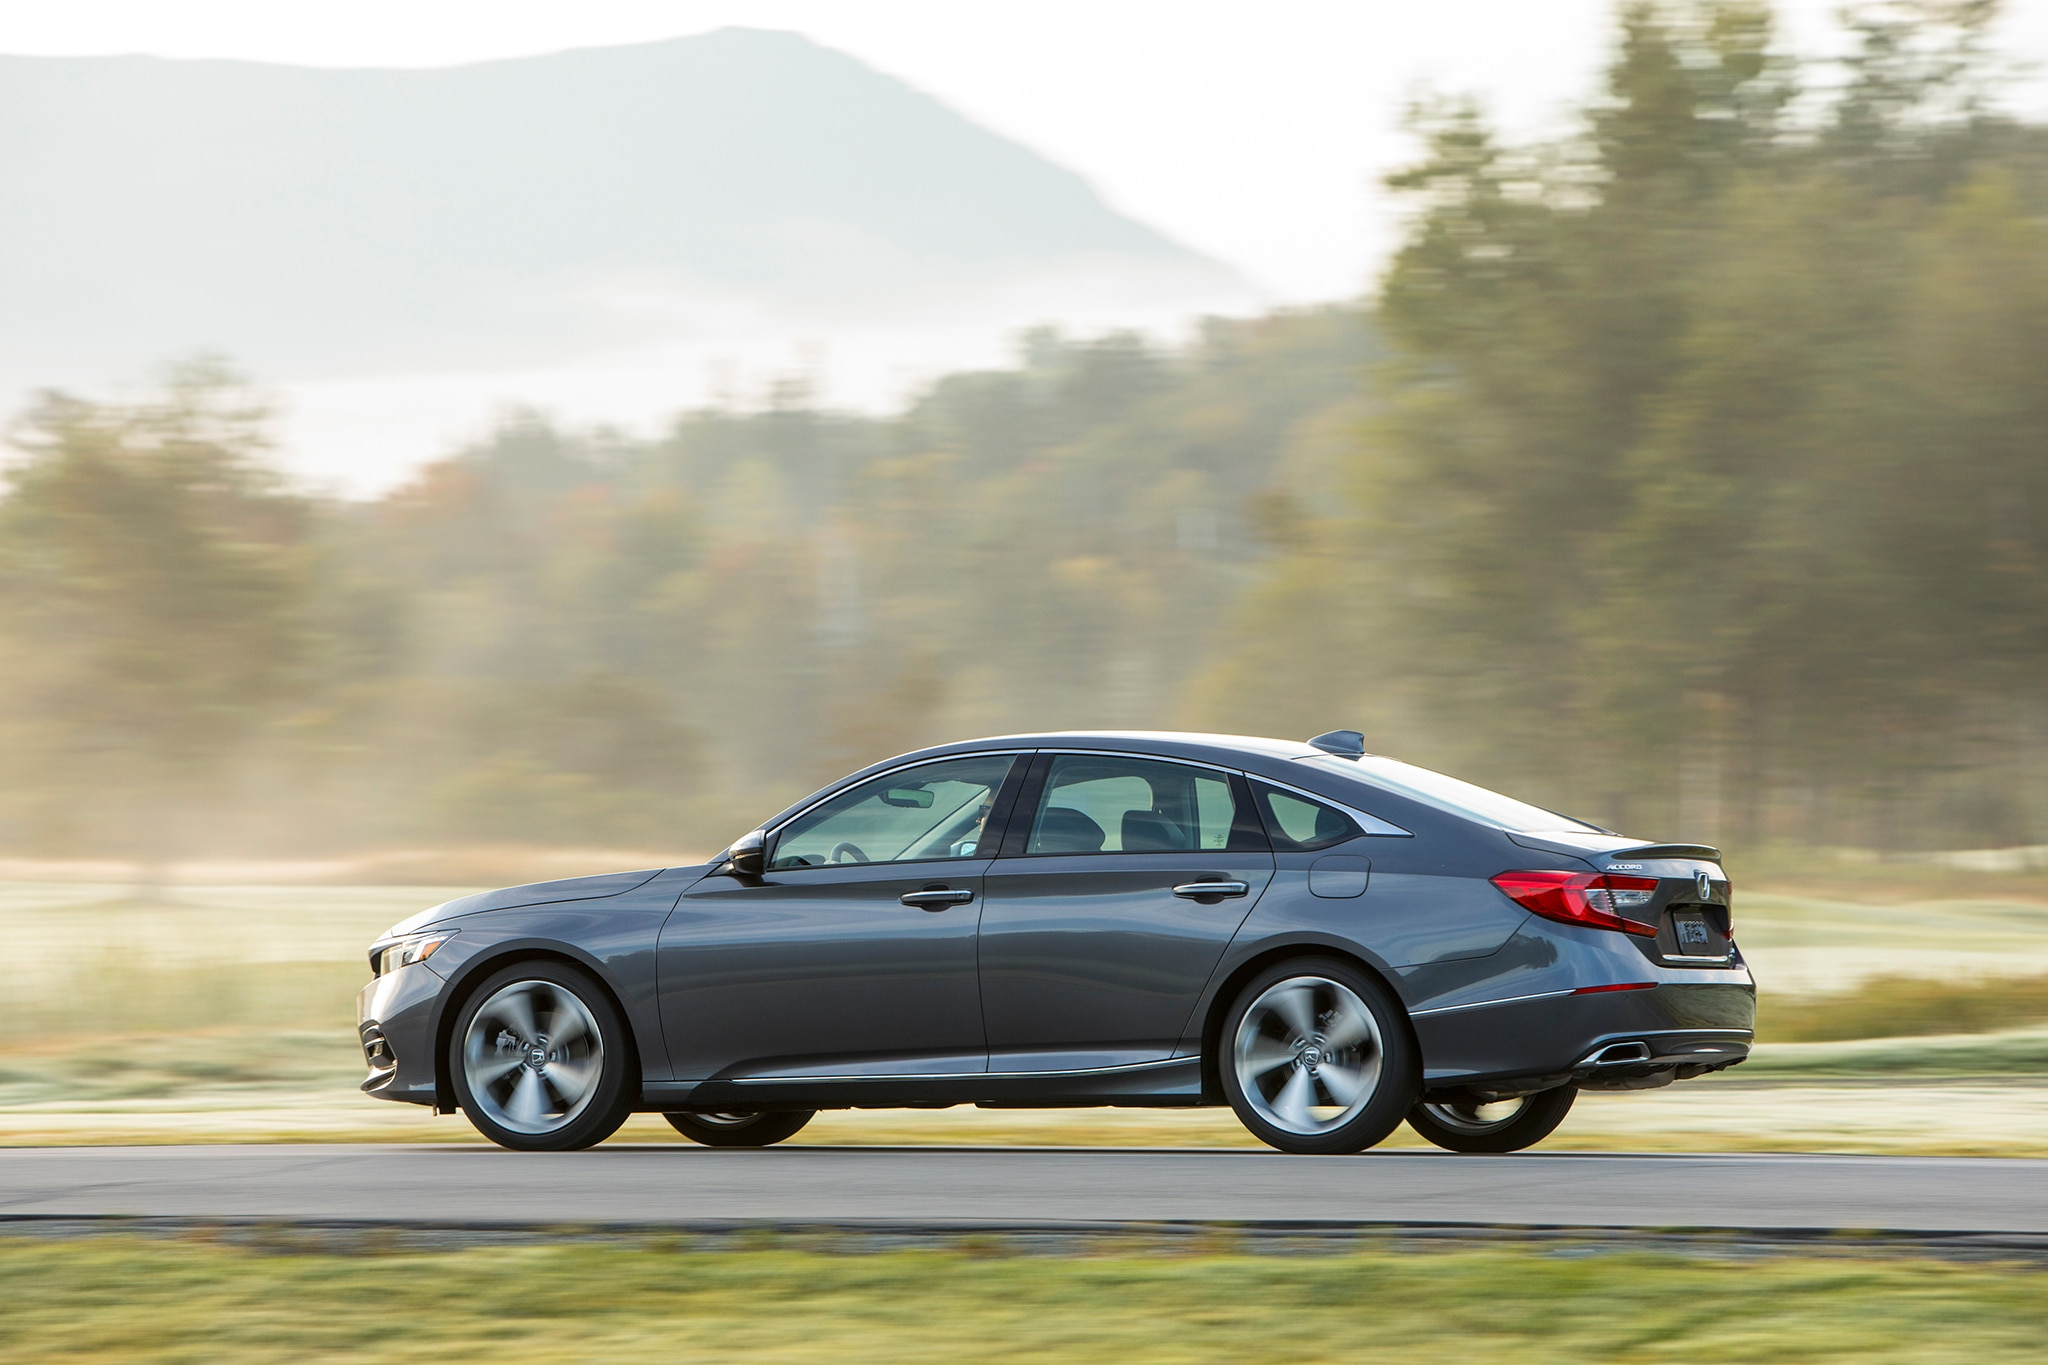 2018 Honda Accord Touring Sedan >> Three Things We Love About the 2018 Honda Accord | Automobile Magazine